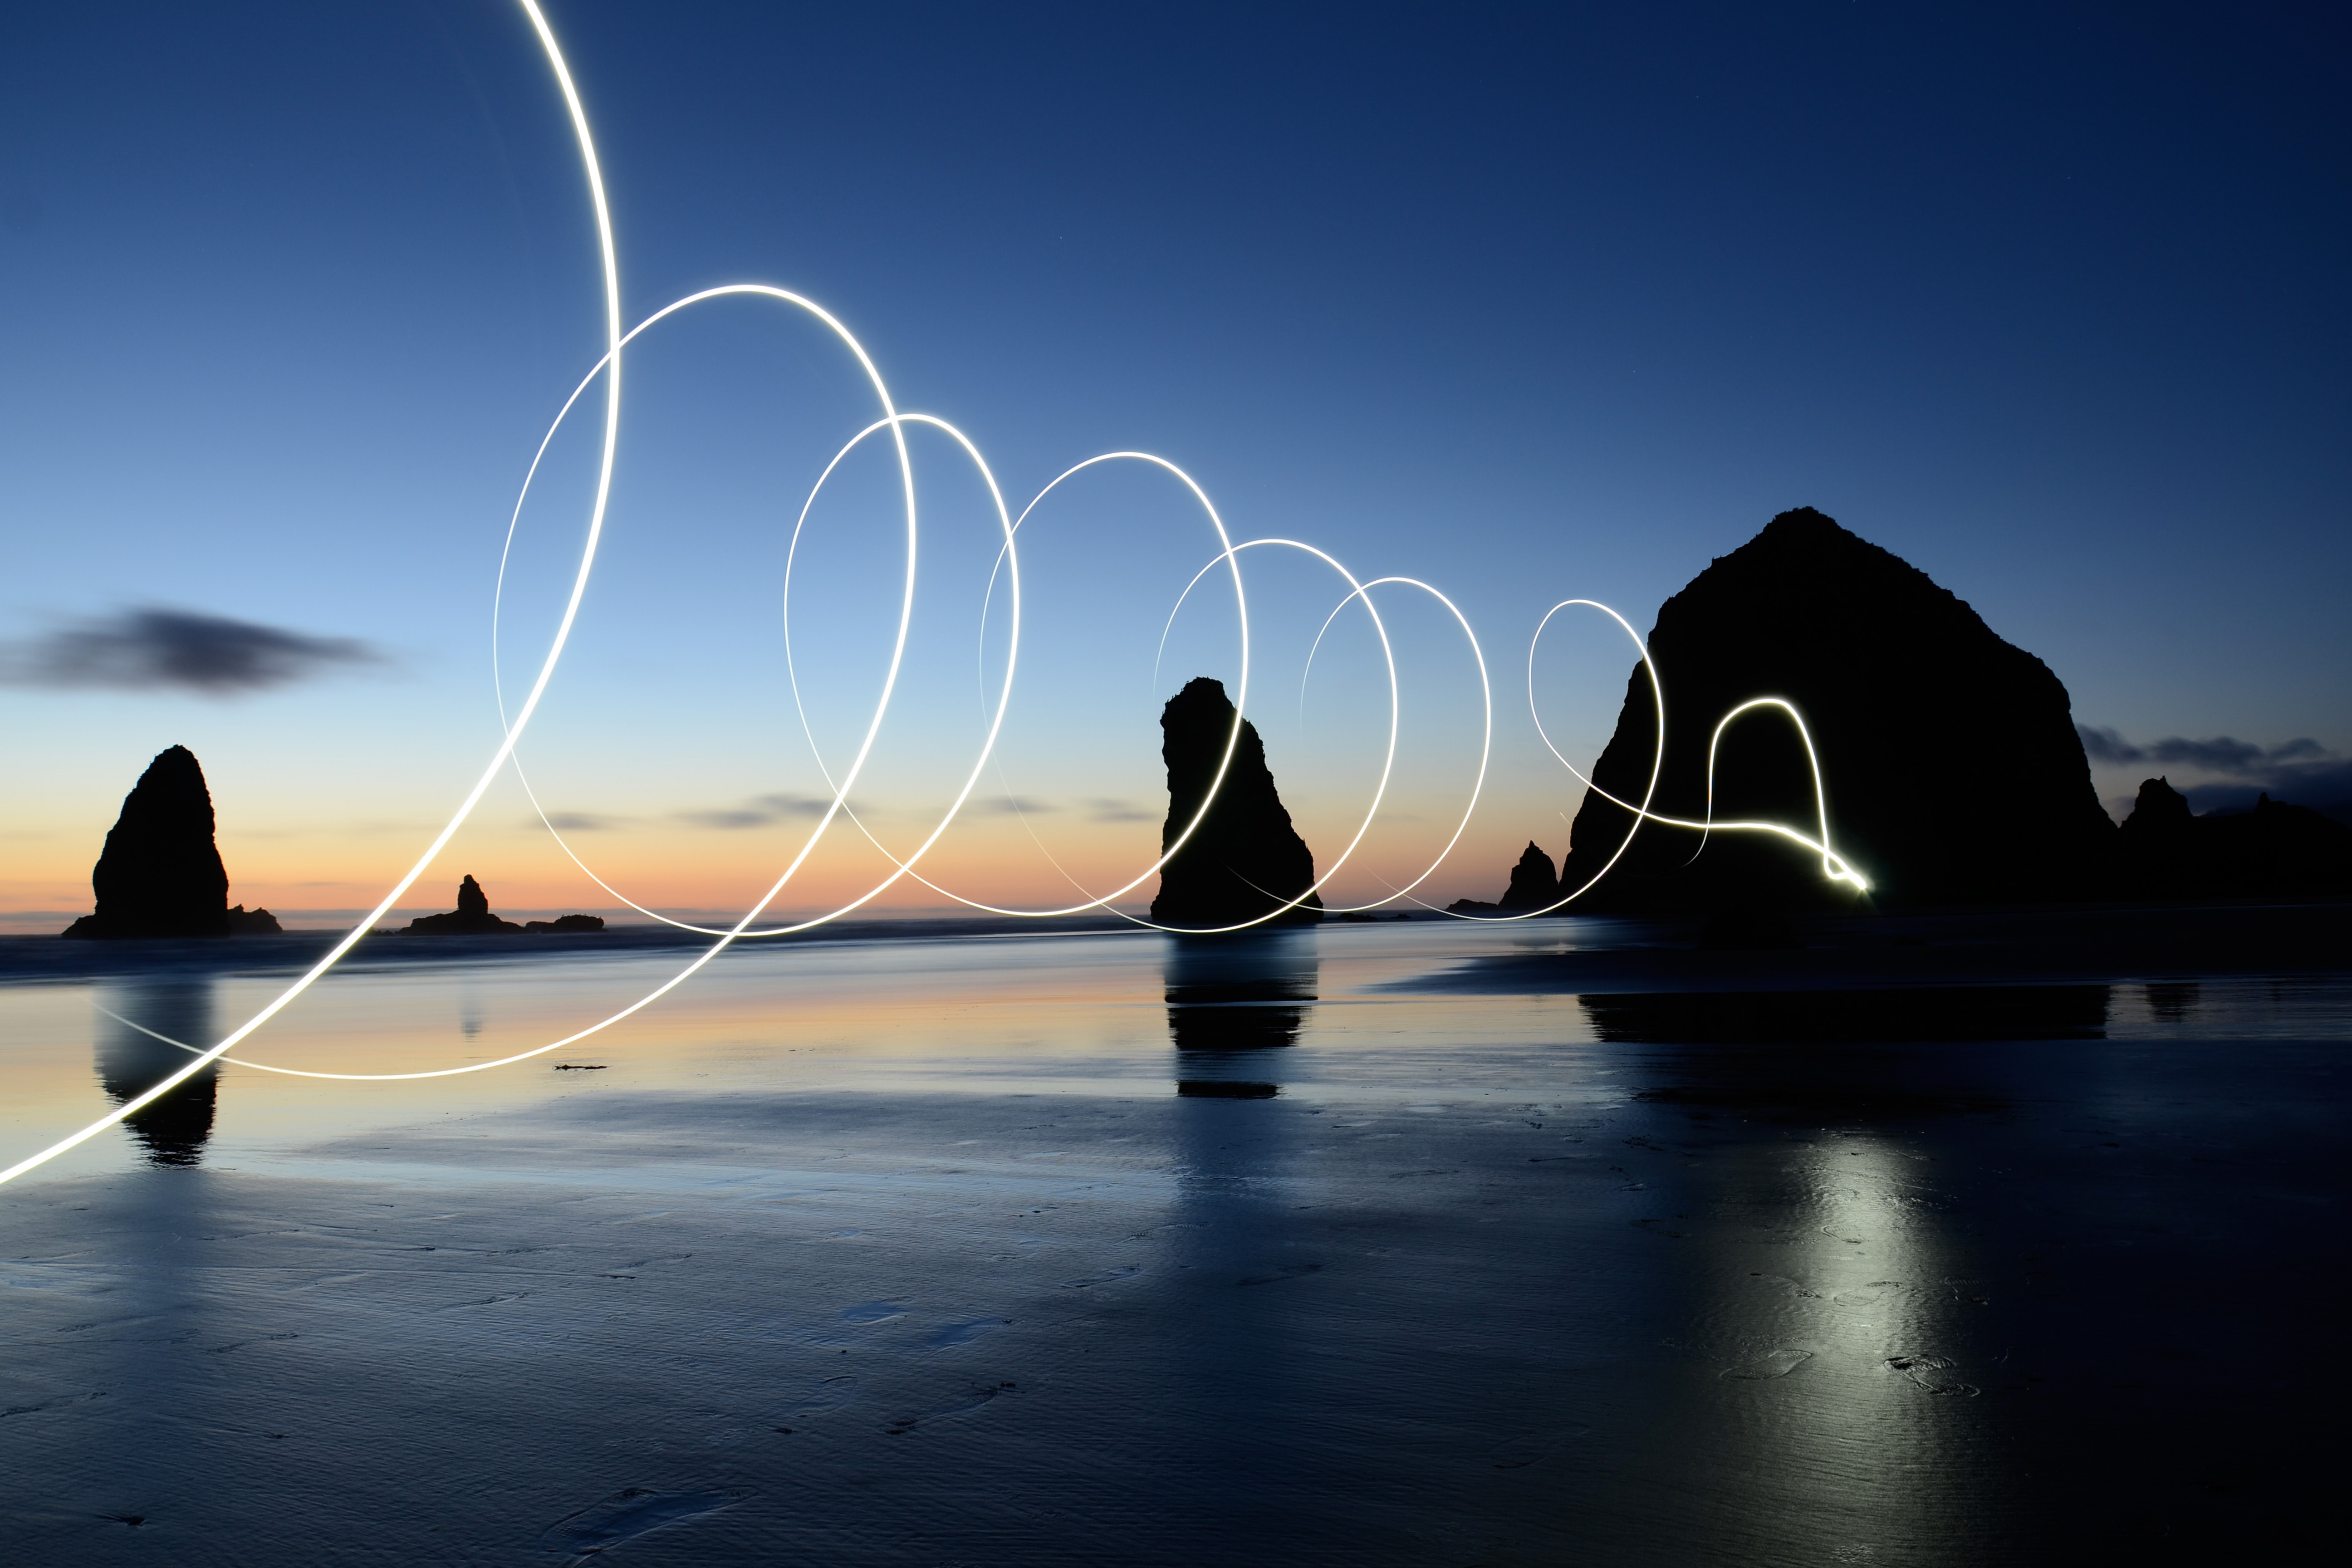 A light painting shot captured with long exposure in Cannon Beach